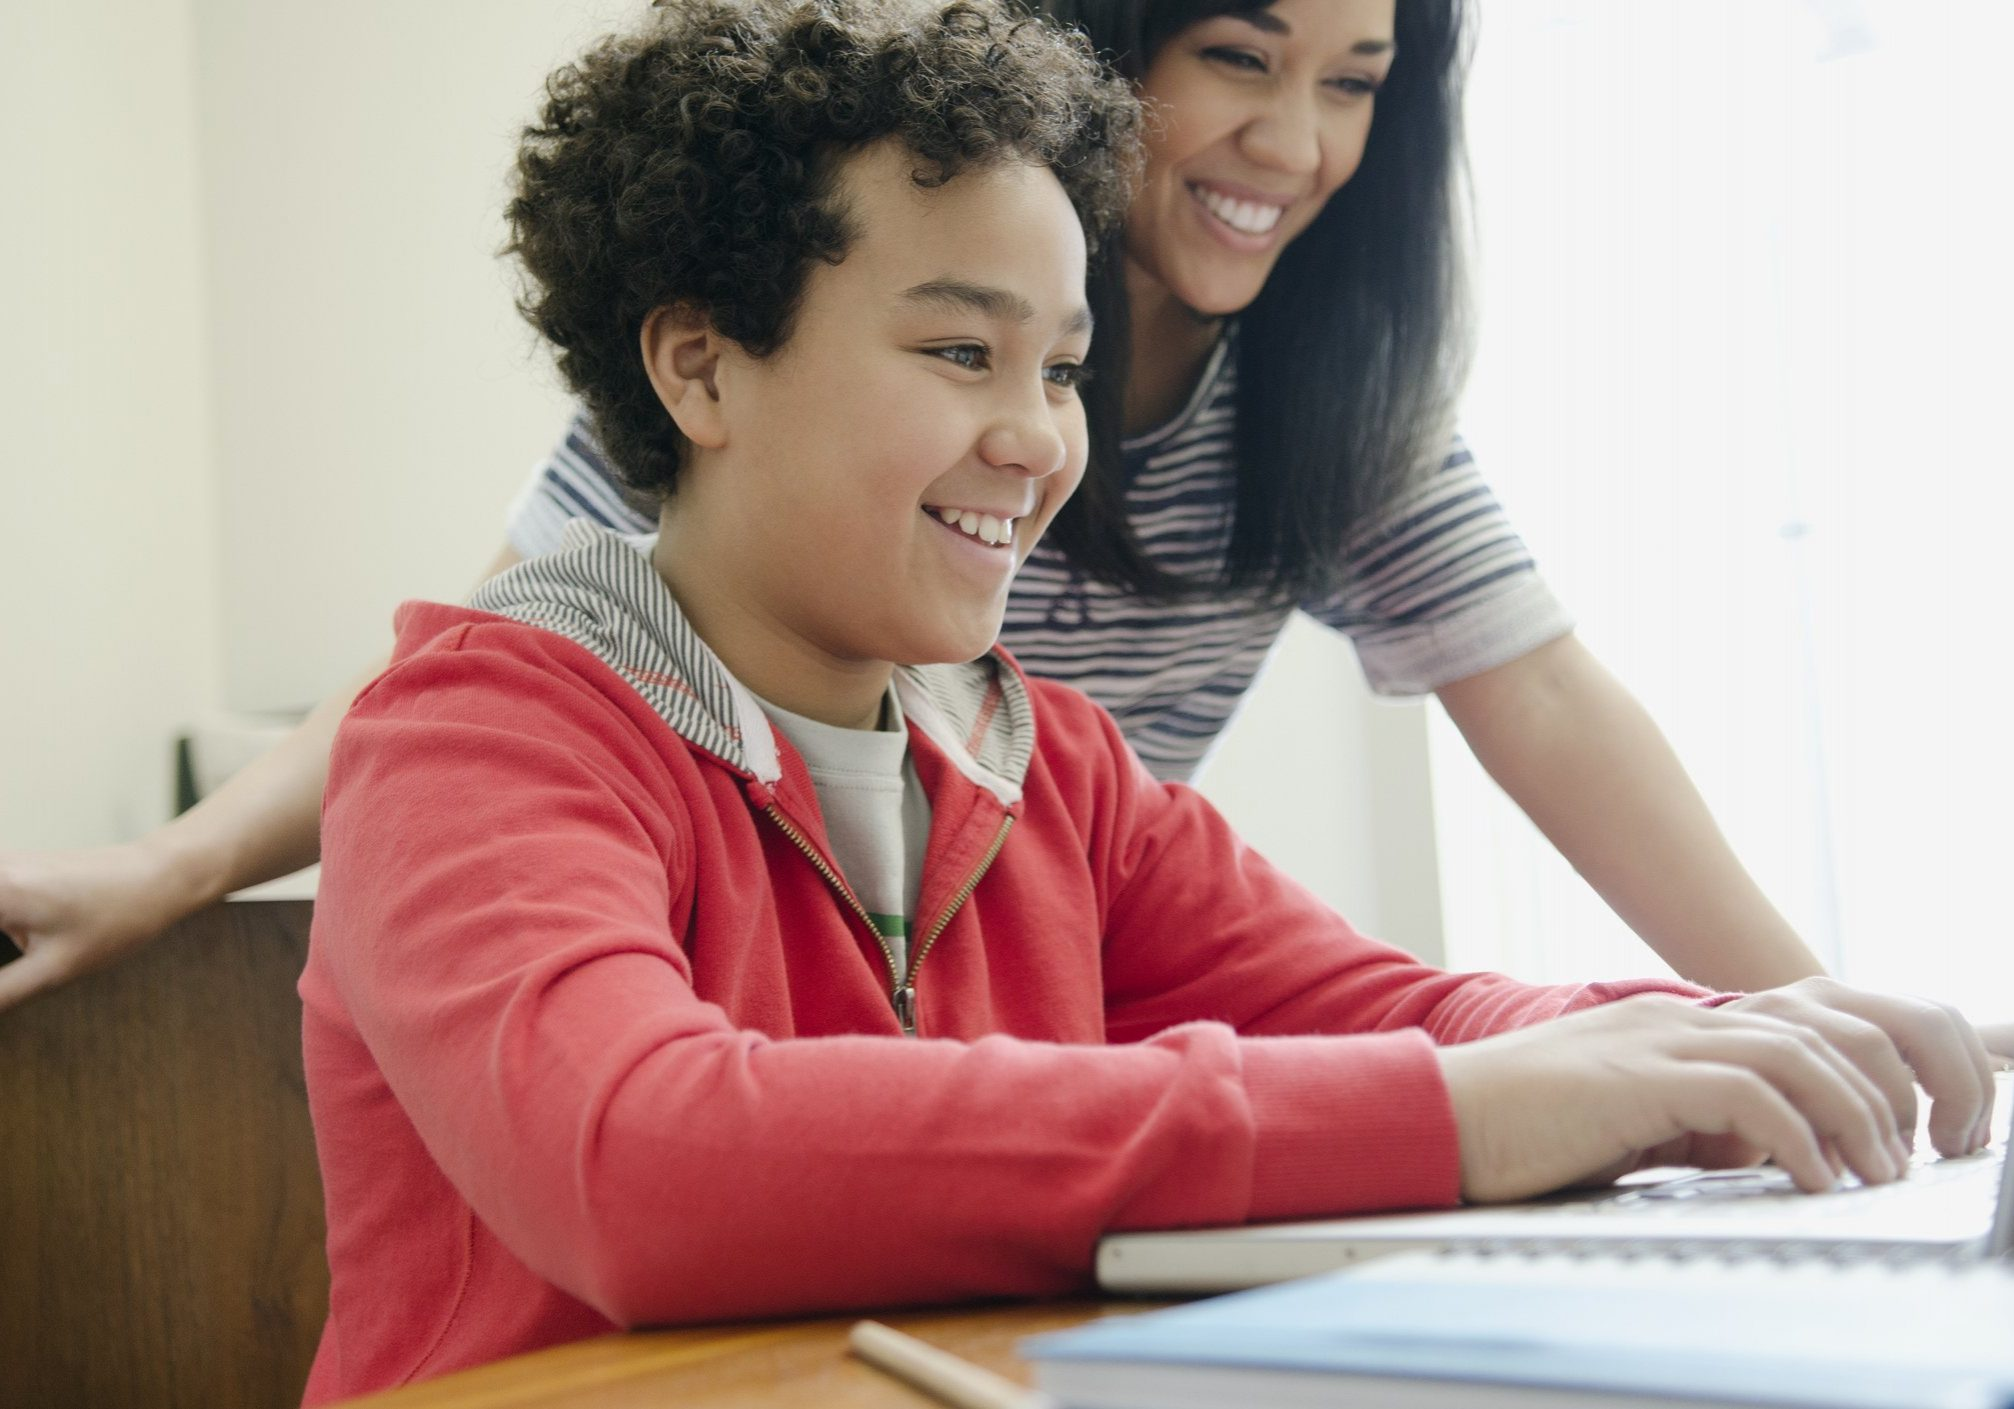 teenager on laptop getting help from mom